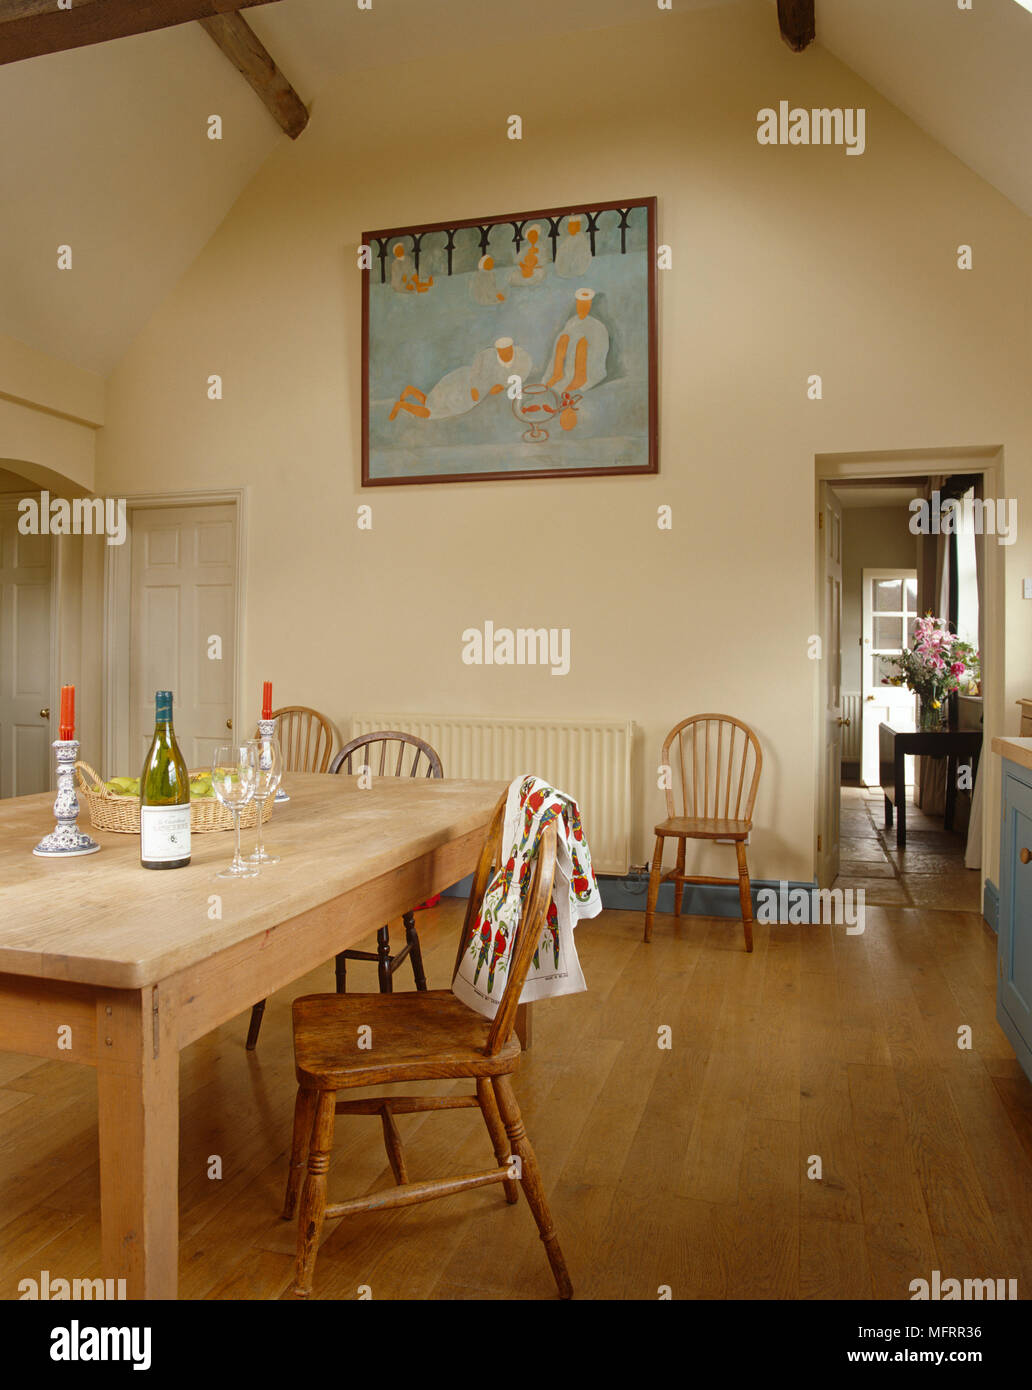 Simple Wooden Dining Table And Chairs In Country Style Kitchen Stock